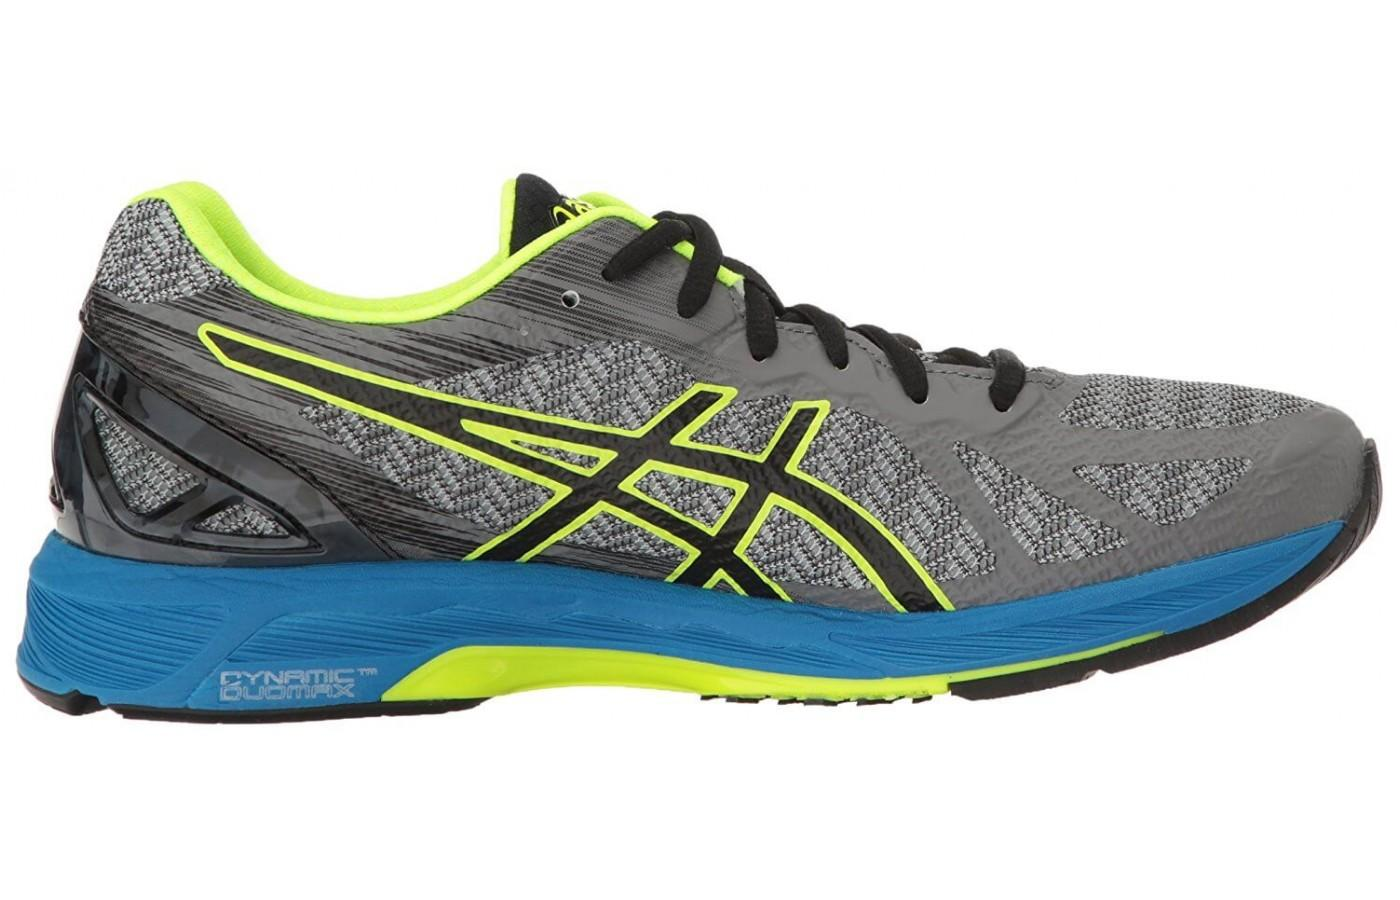 The Asics Gel DS Trainer 22 is lightweight, fast and responsive